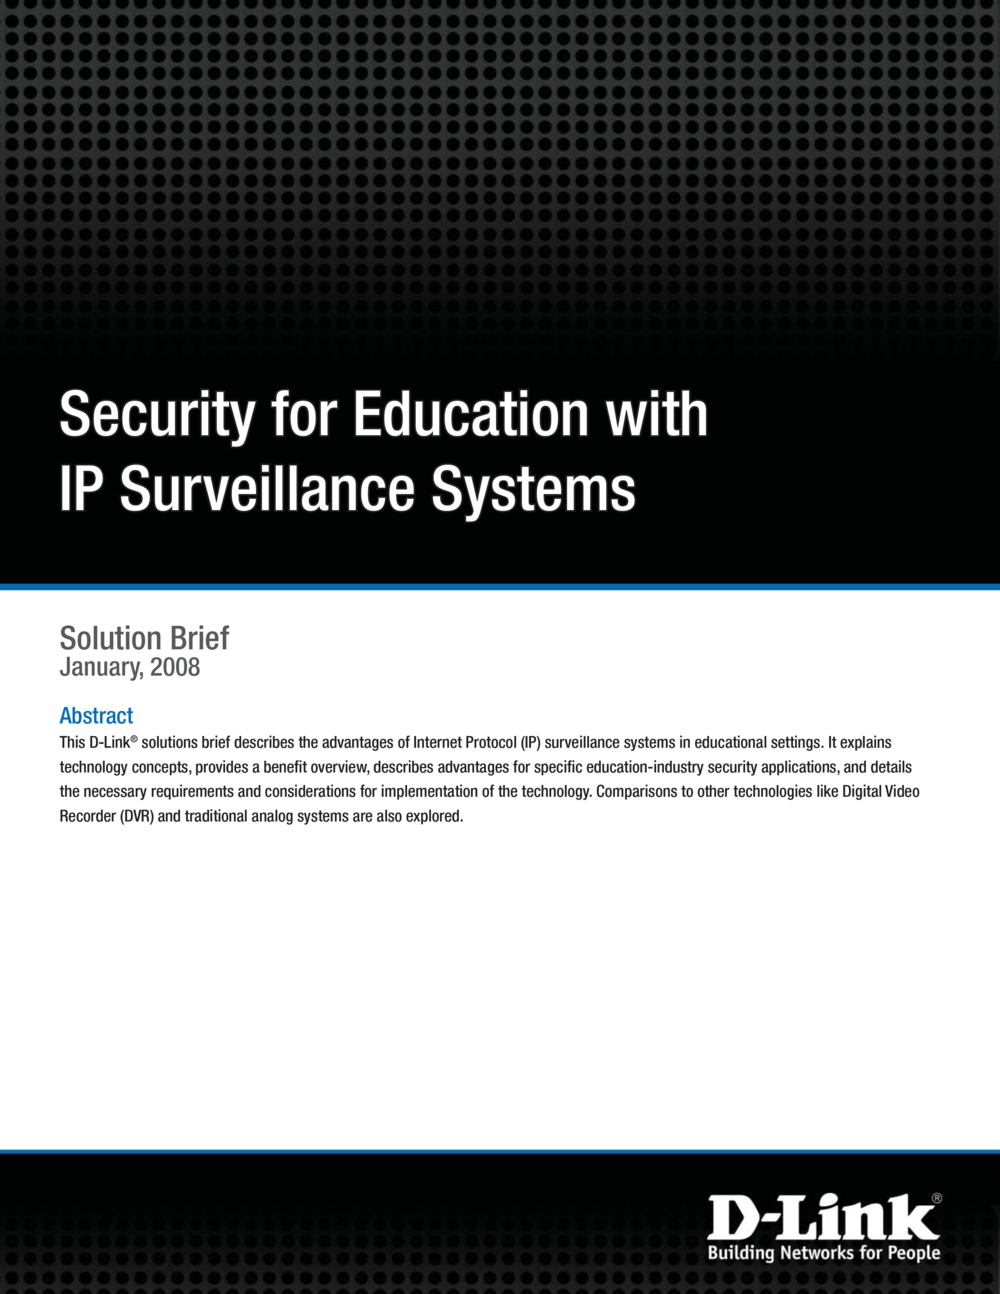 D-Link_IP_Surveillance_Education_Solution_Brief-1.png